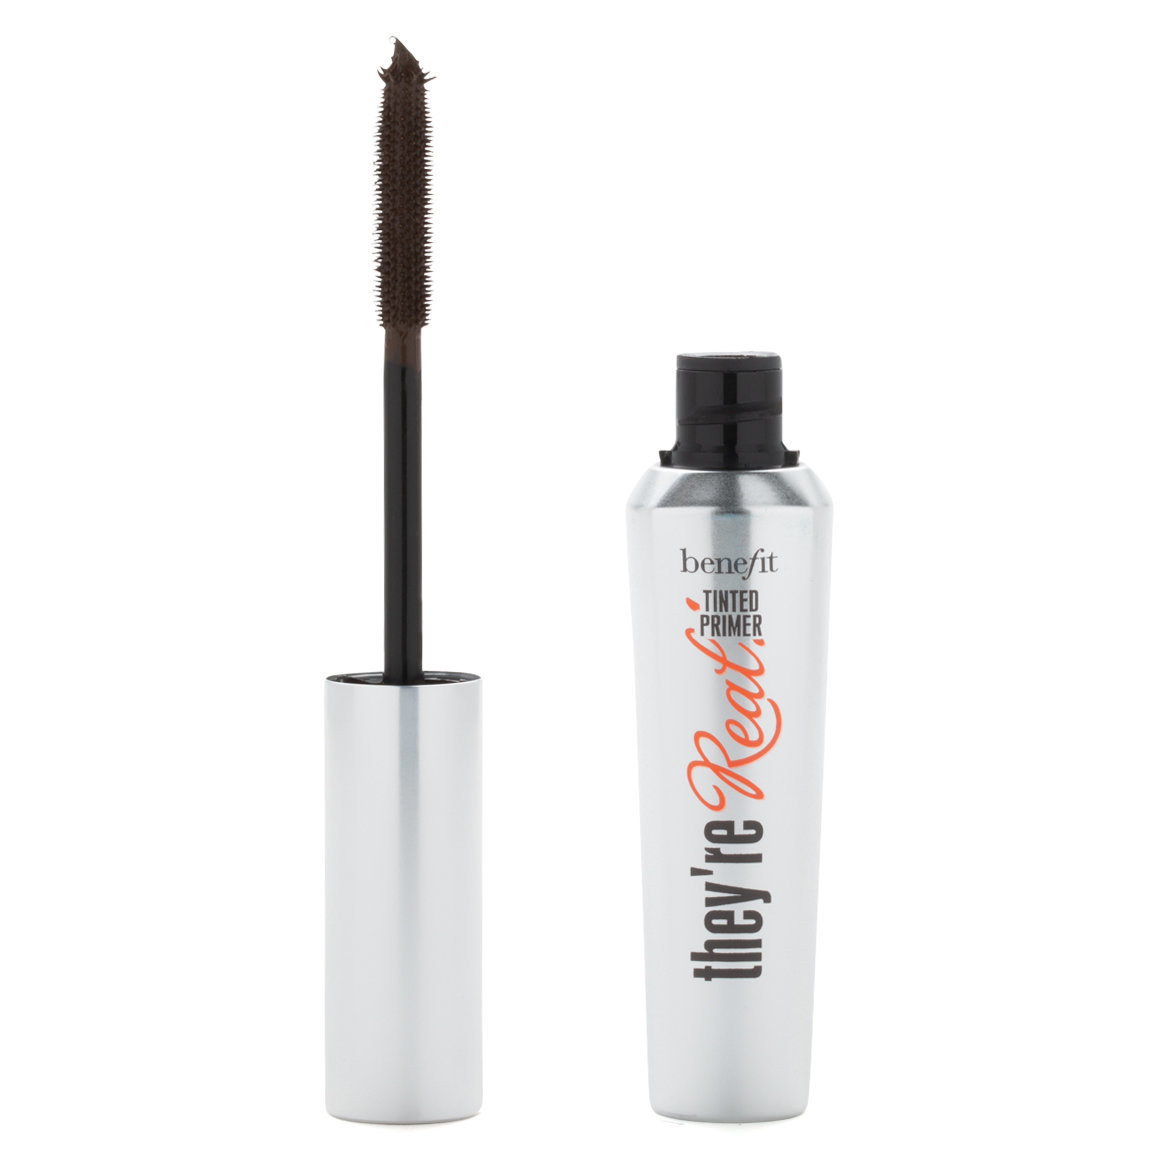 Benefit Cosmetics They're Real! Tinted Primer product smear.